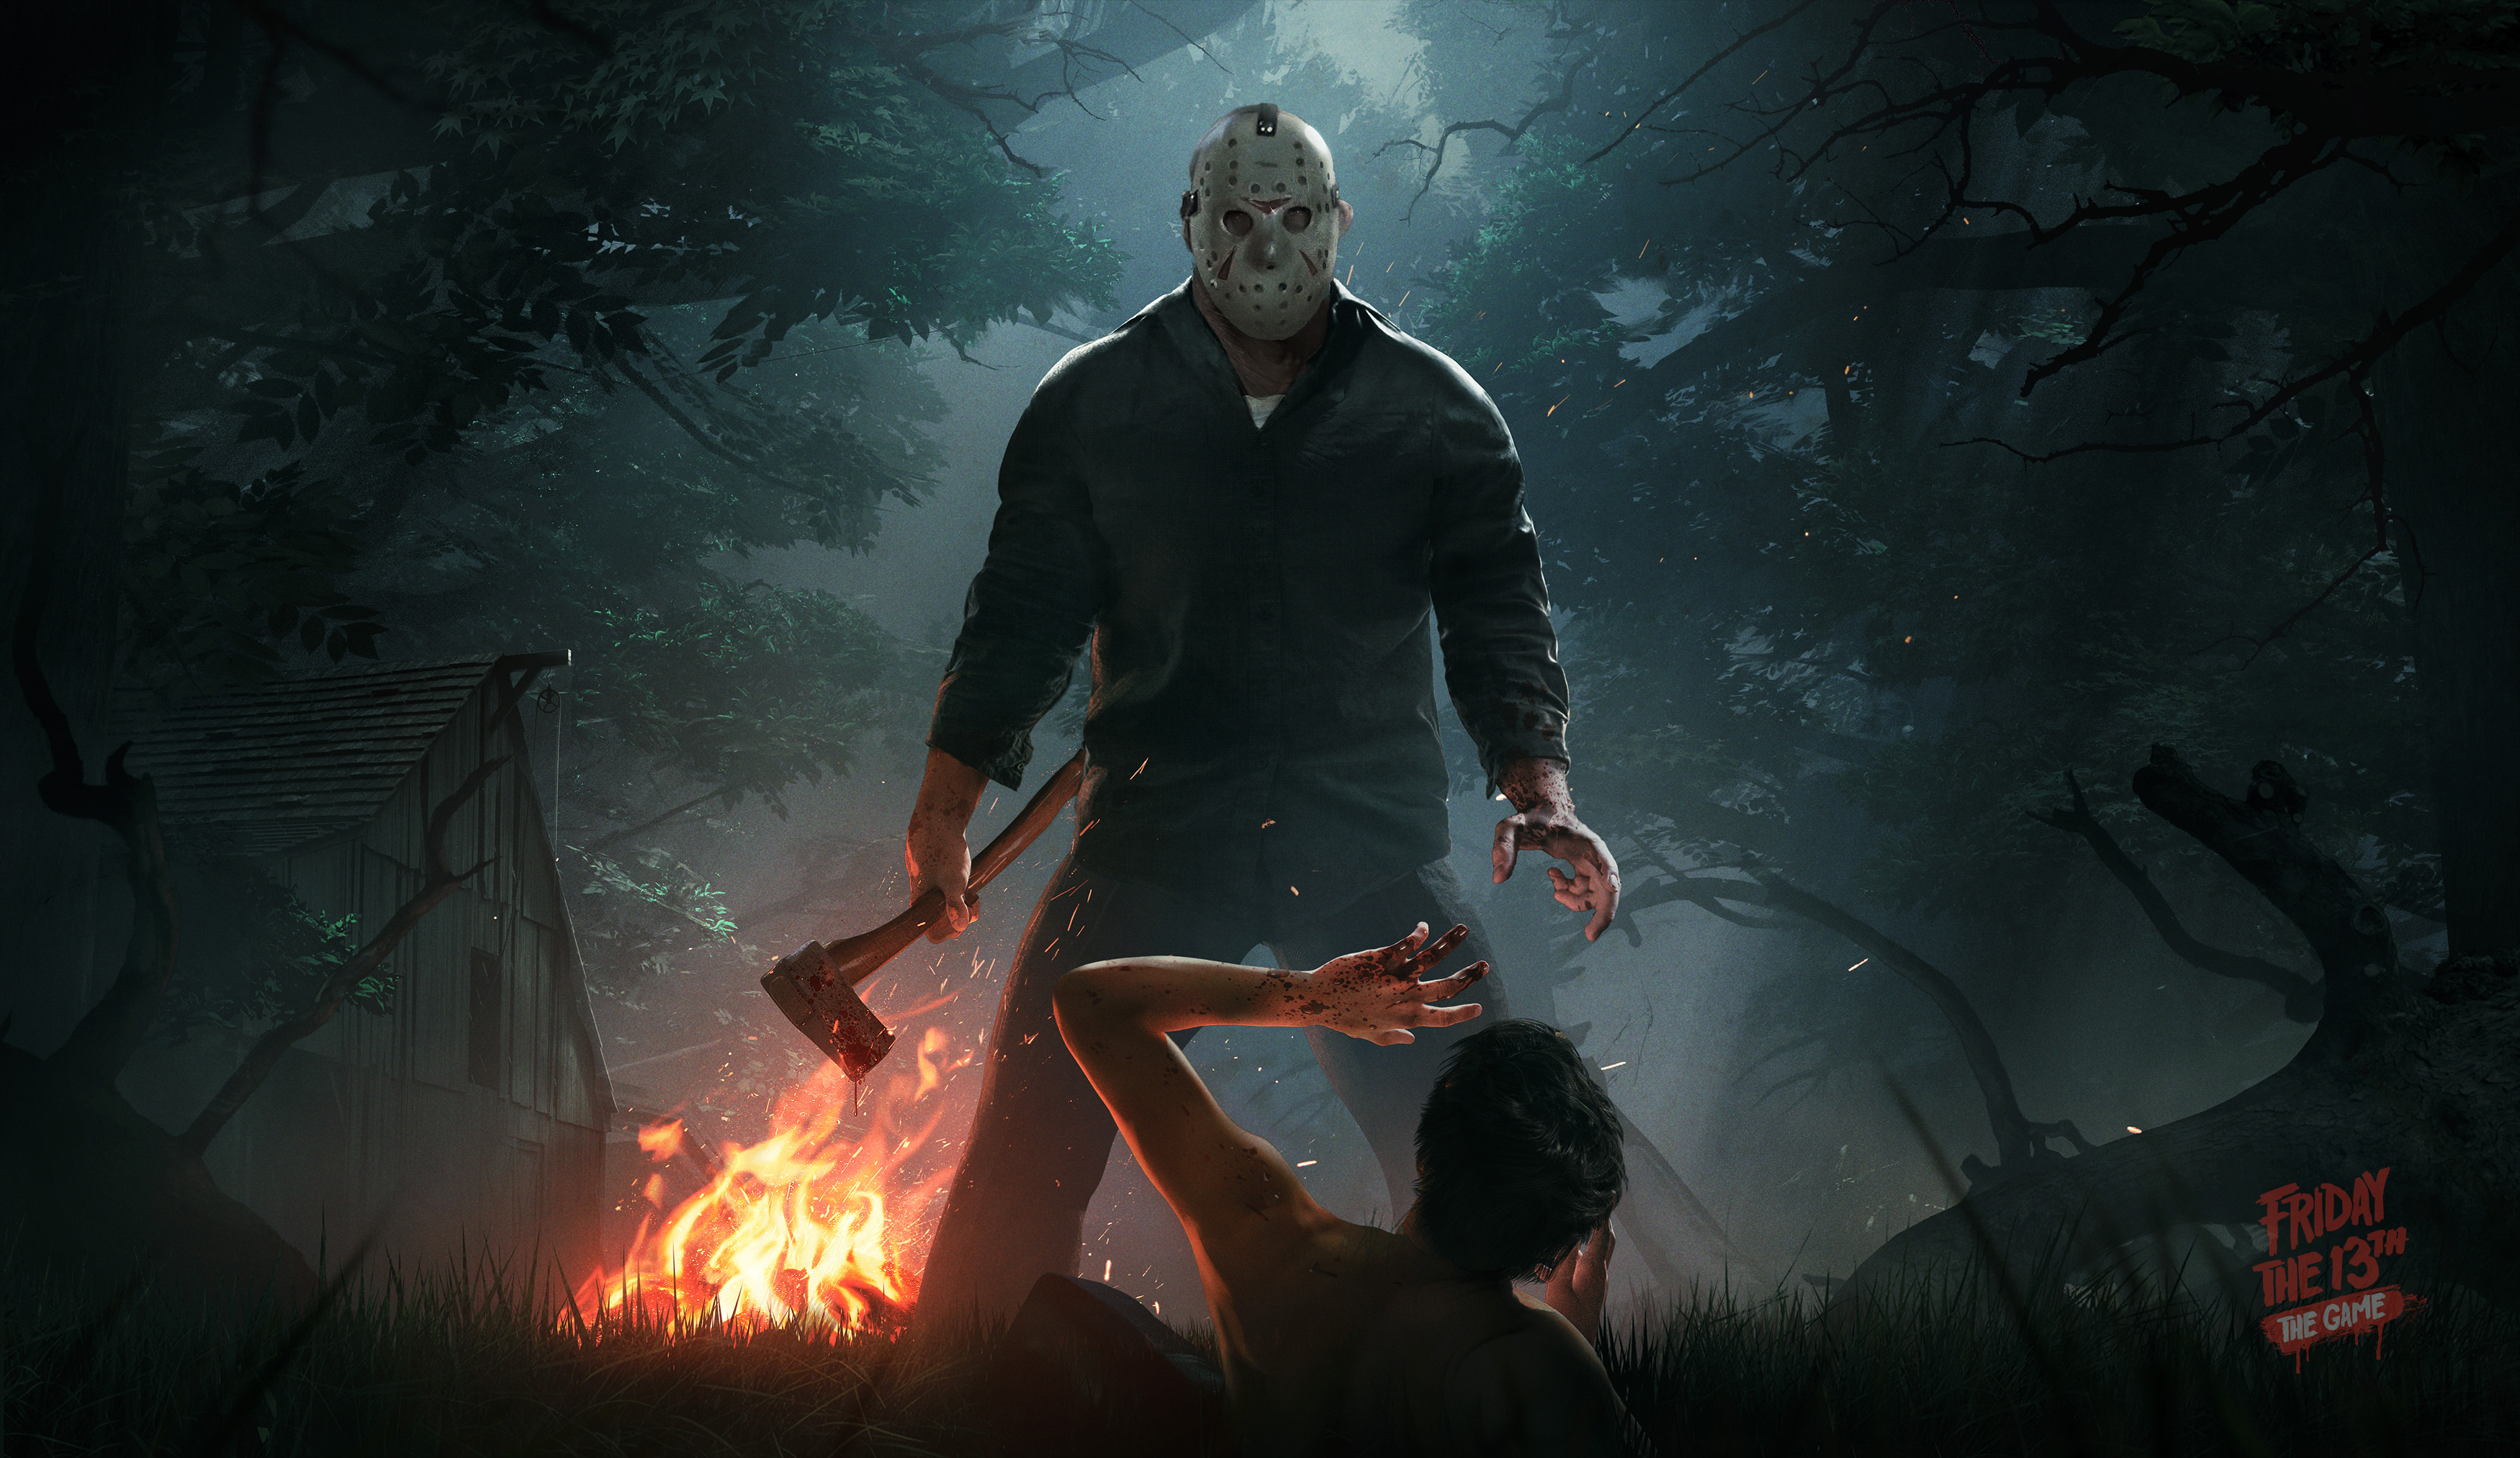 Photo of Xbox One Friday the 13th With a New Patch, Here are the Patch Notes